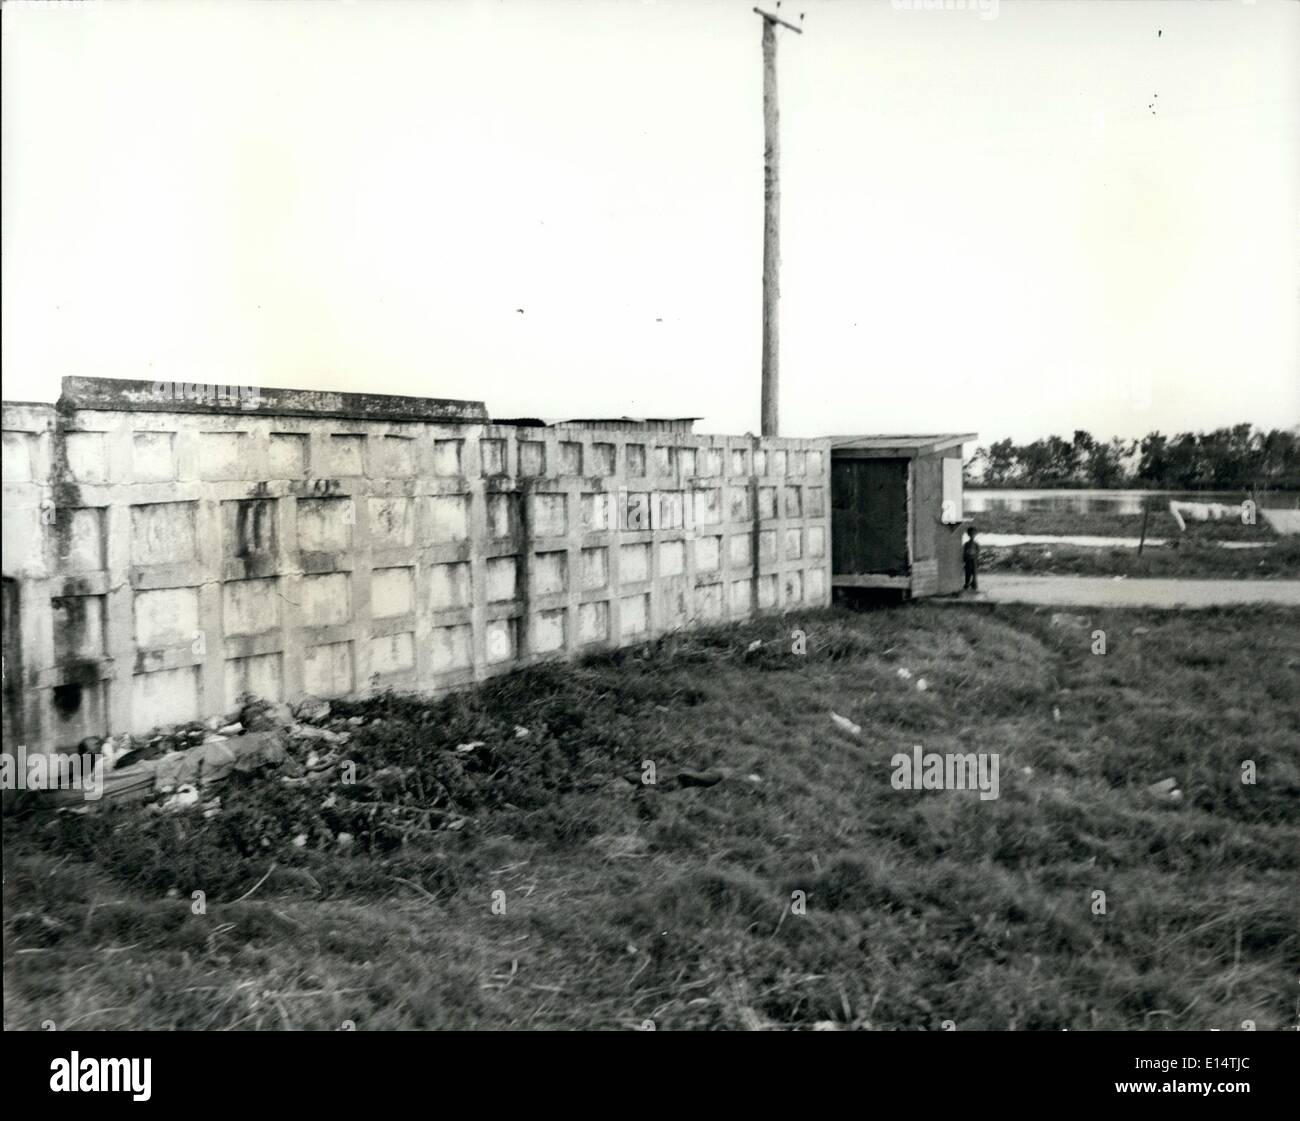 Apr. 18, 2012 - British Honduras - World's Newest Hot-Spot: The burial vaults of the British who died in Belize during the notorious yellow fever epidemic in 1921 - Stock Image